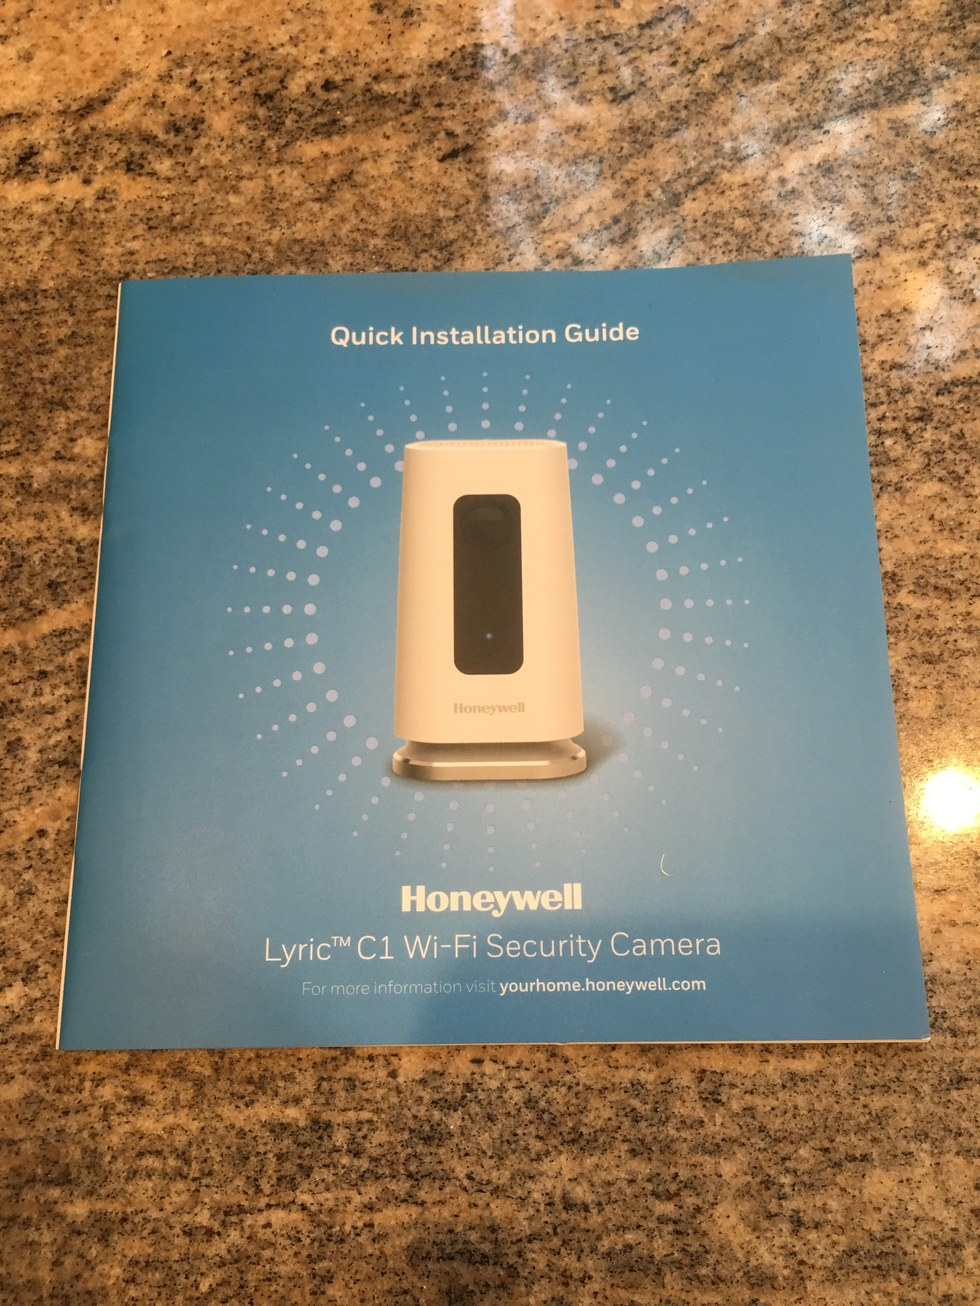 Honeywell Lyric C1 Wi-Fi Security Camera Quick Installation Guide